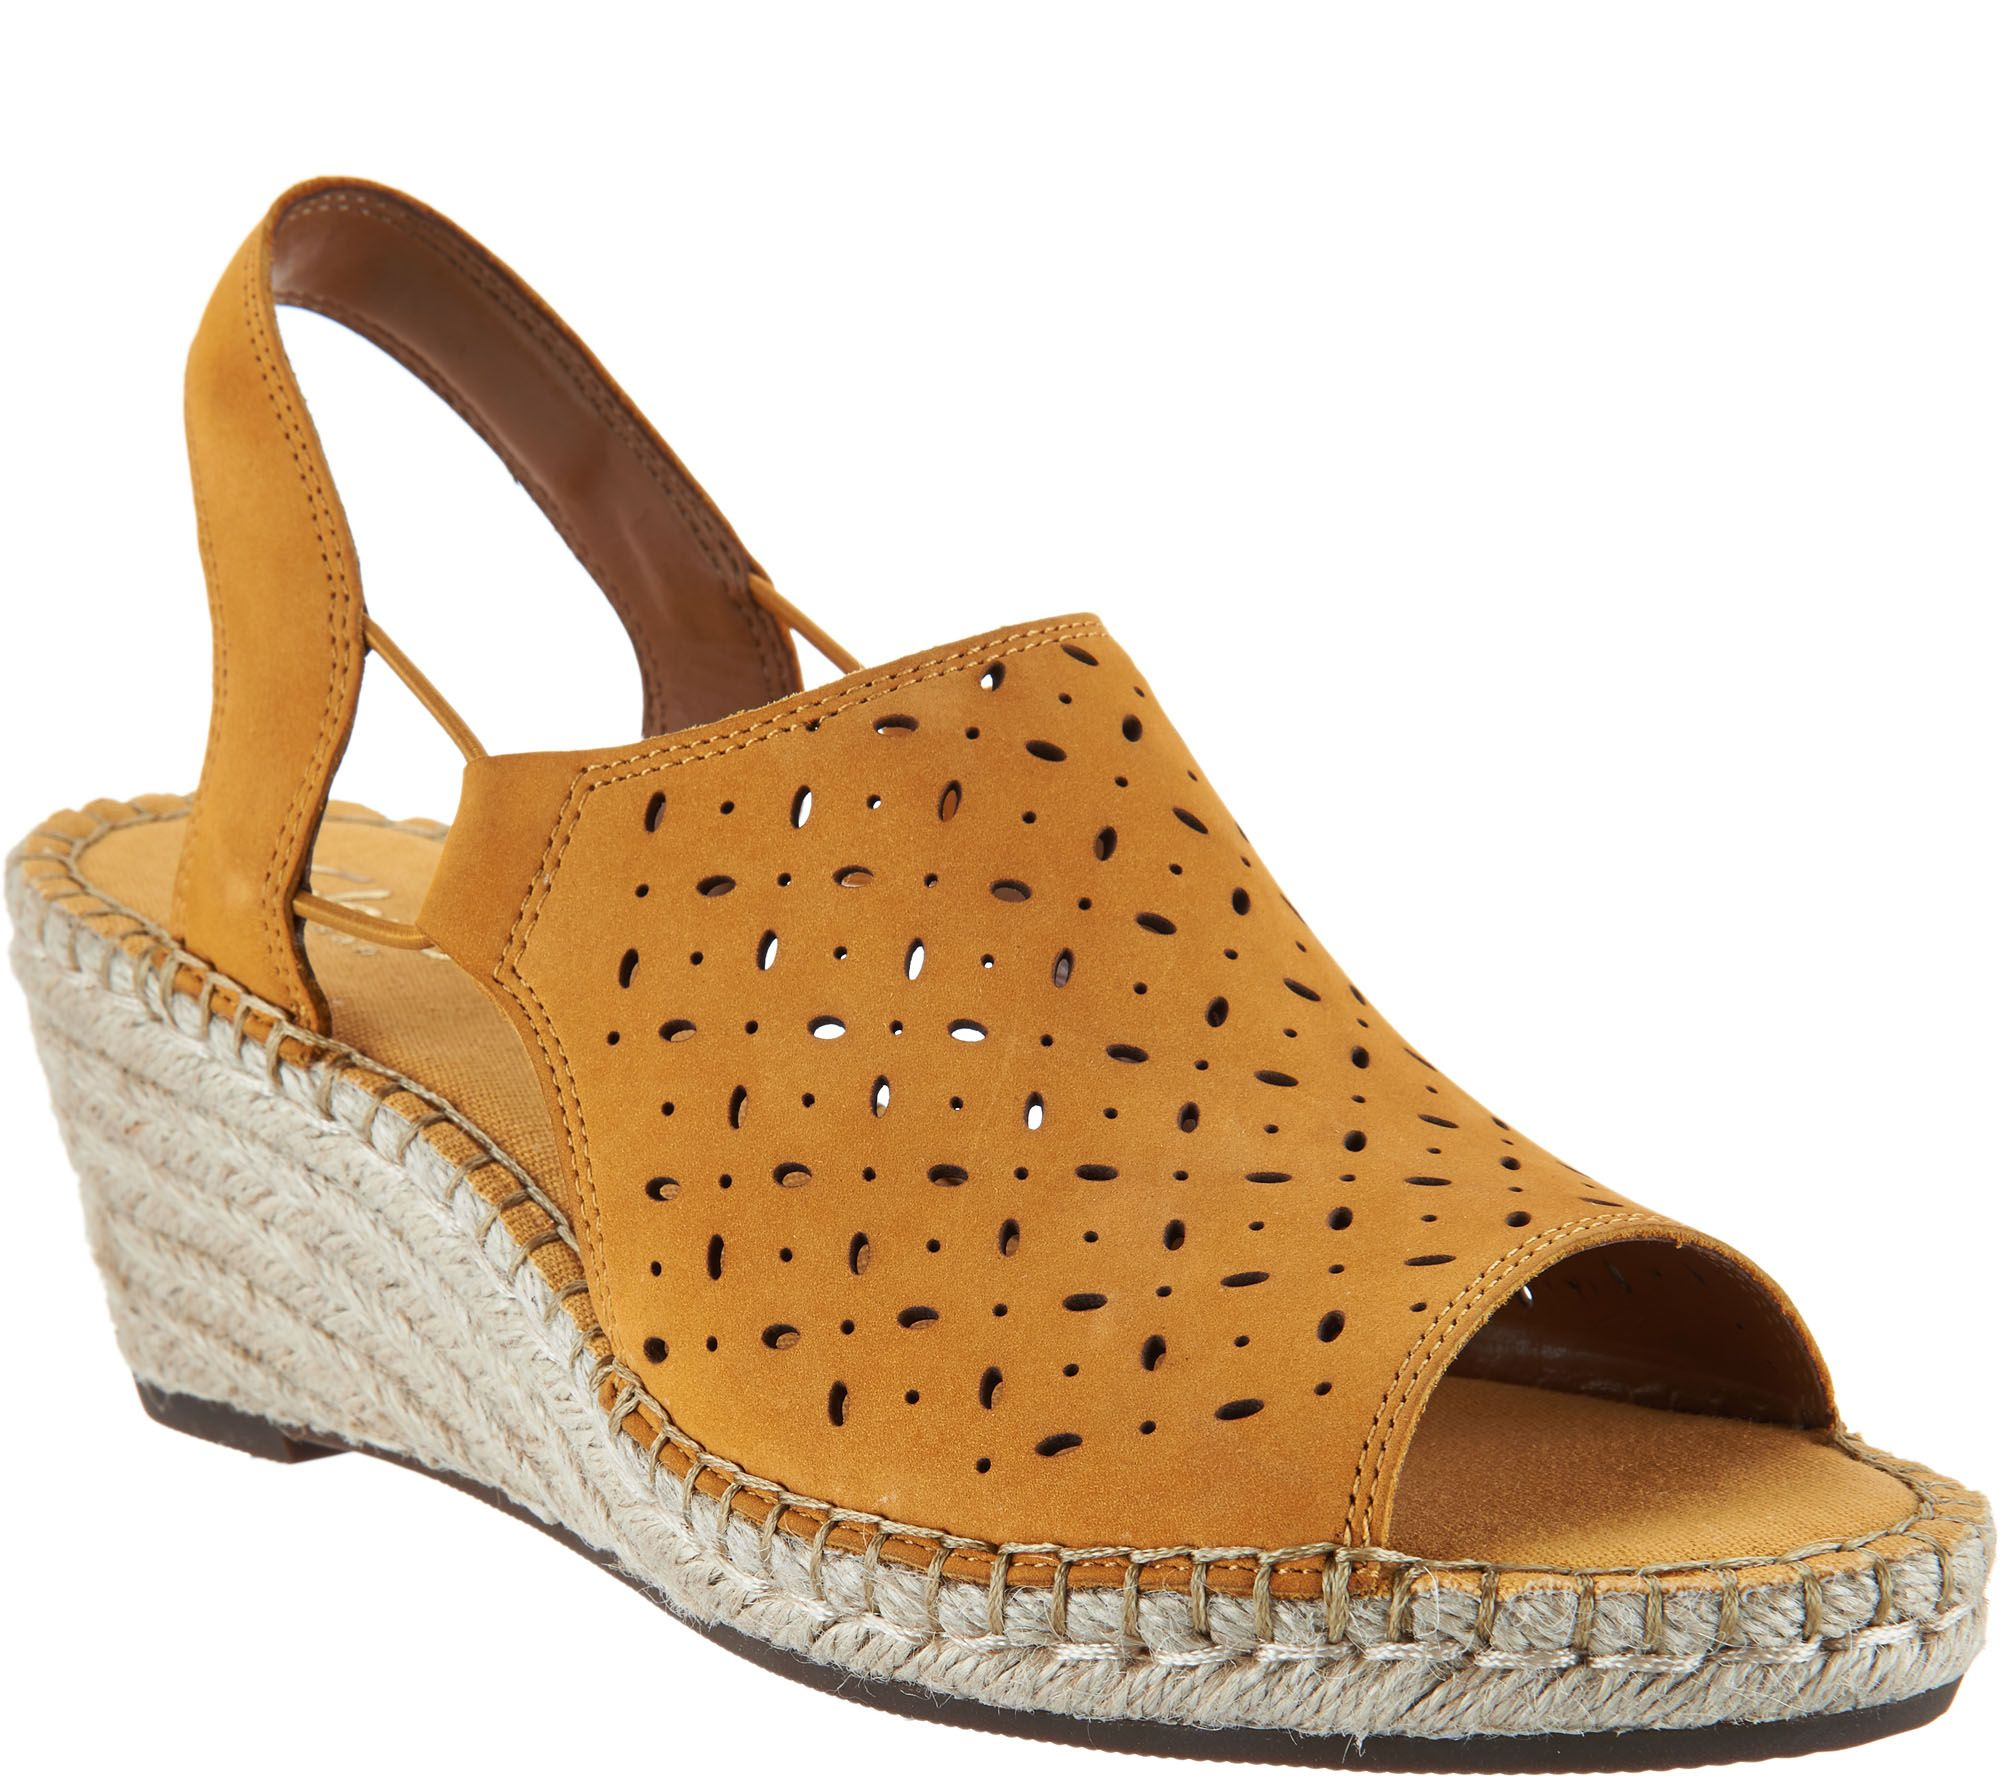 Clarks Artisan Leather Espadrille Wedge Sandals Petrina